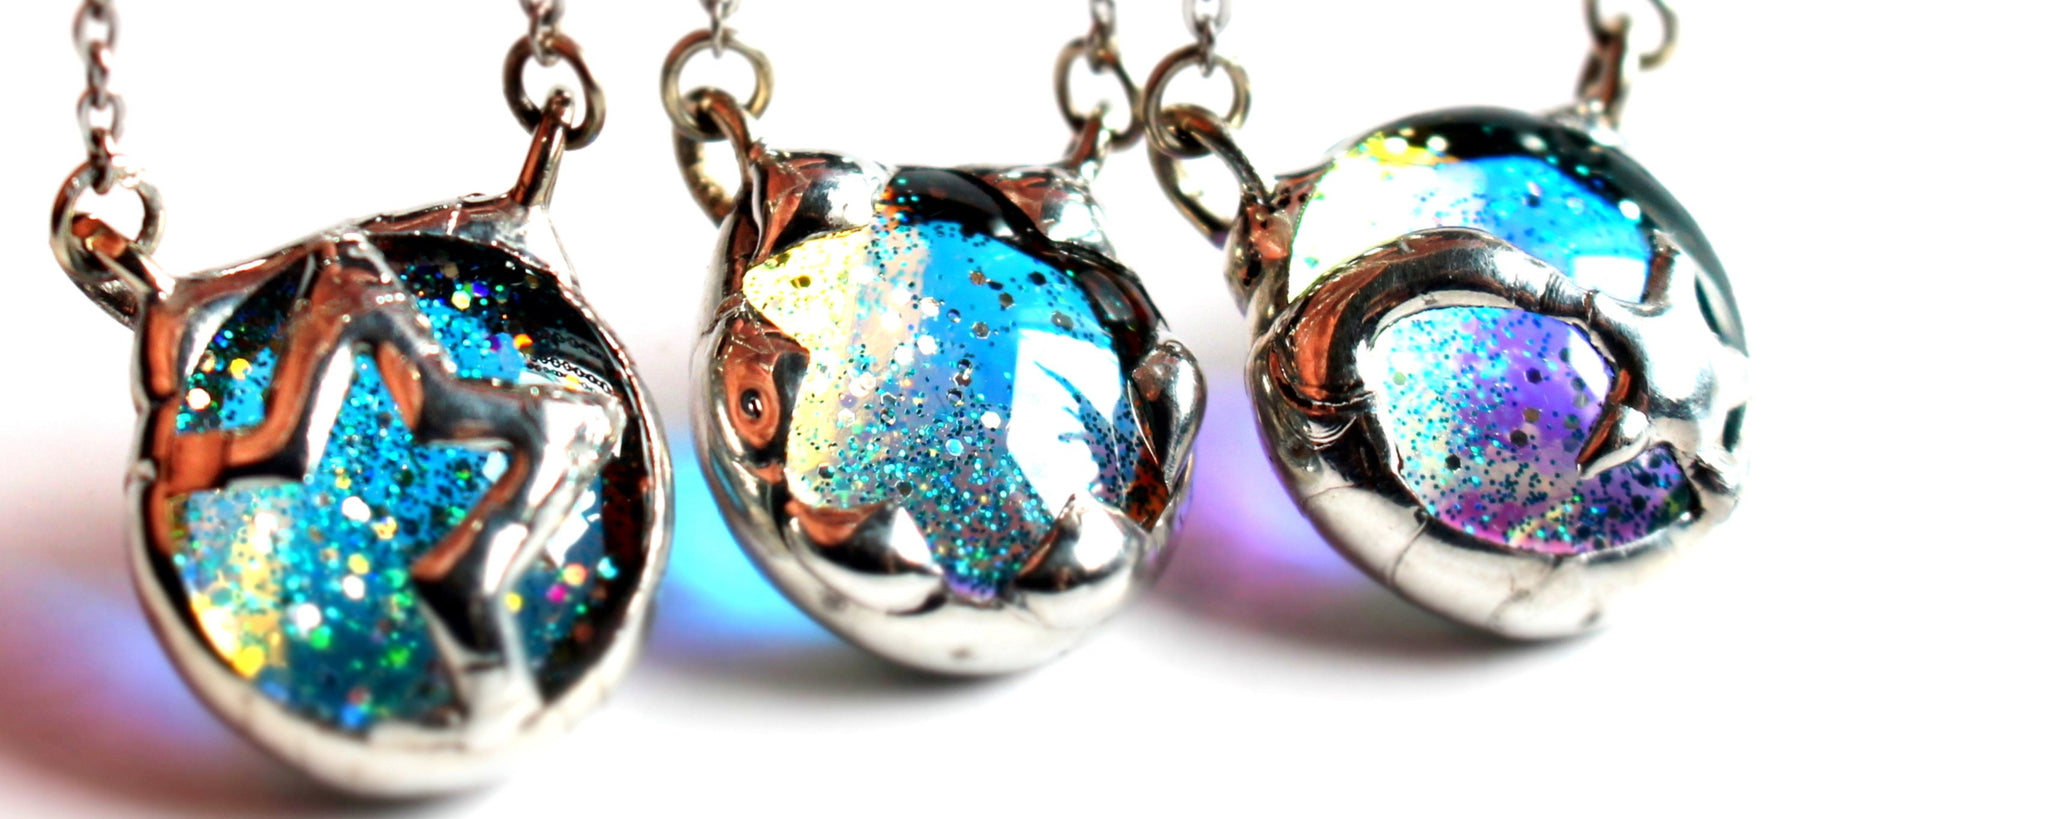 Celestial jewelry in Dichroic glass